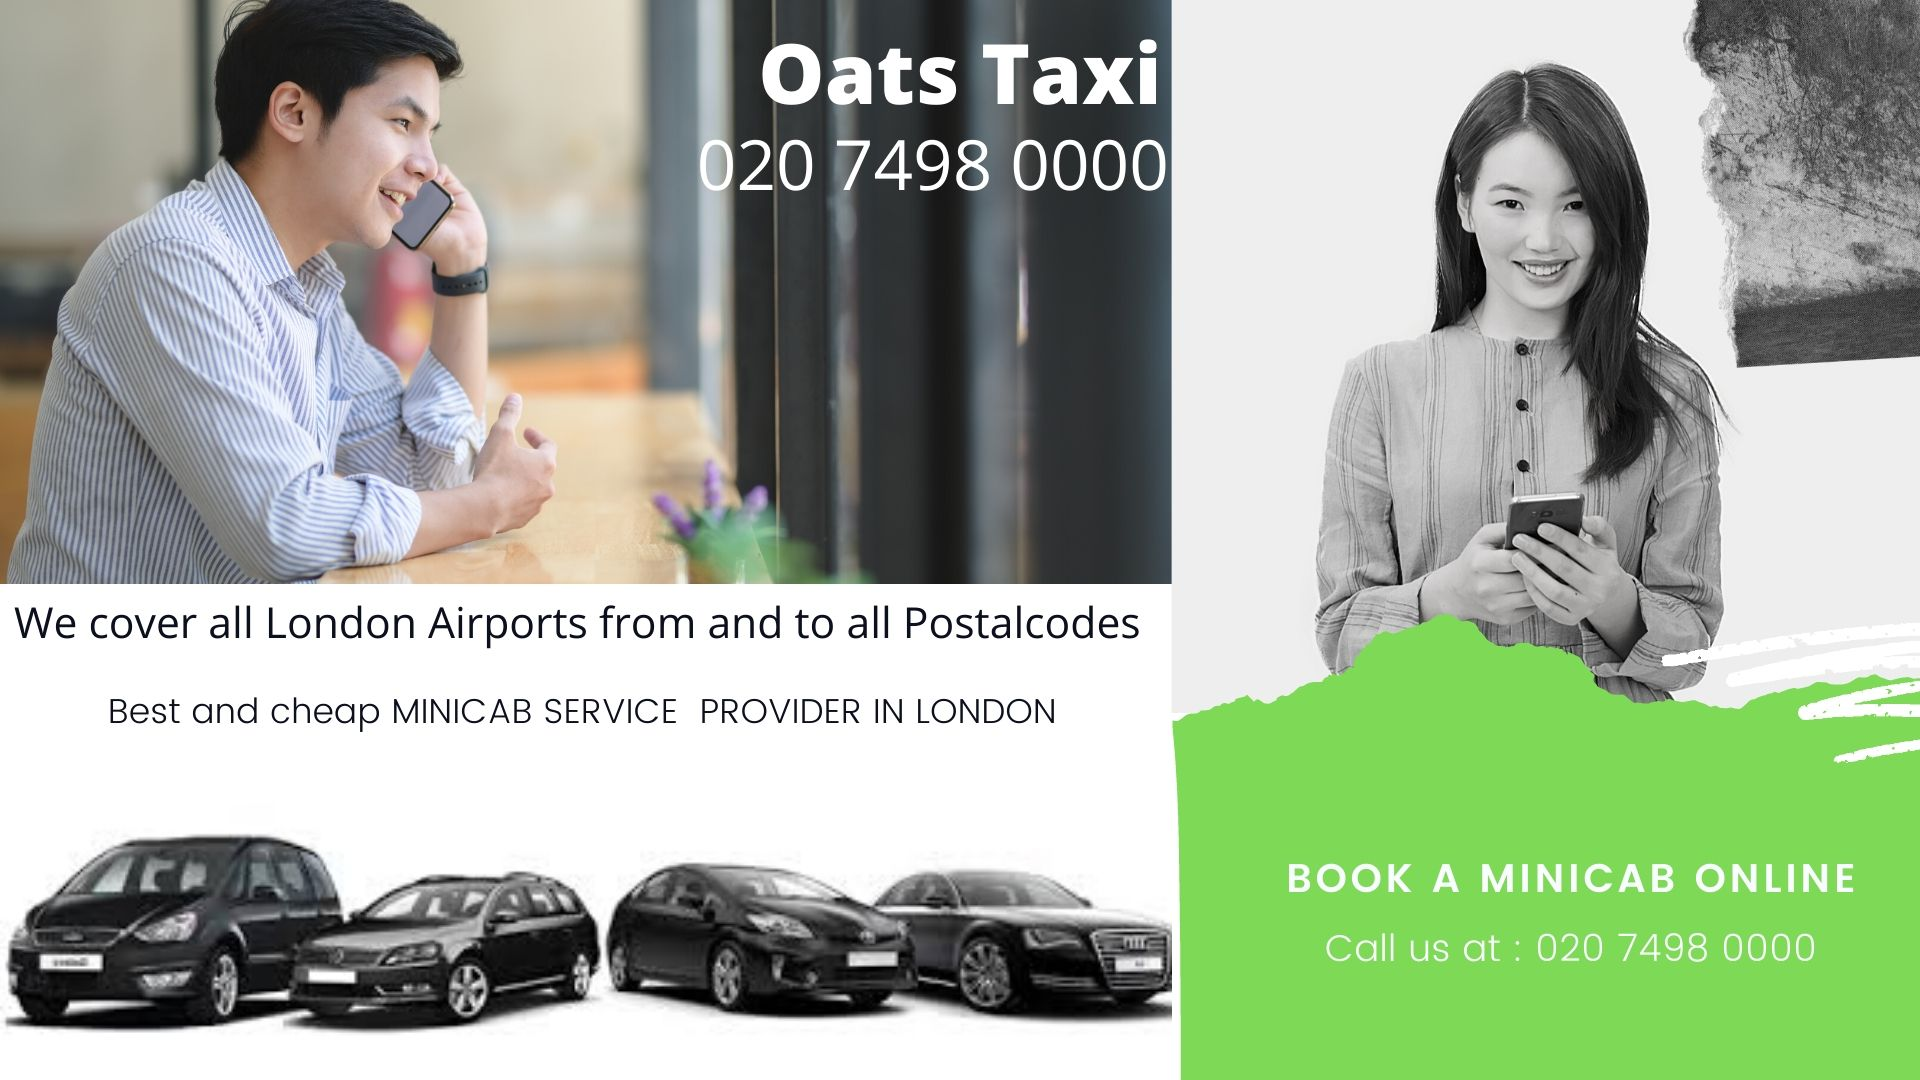 Taxi Office Near ECCLES ROAD, Battersea SW11, Taxi From Battersea SW11 To Gatwick Airport